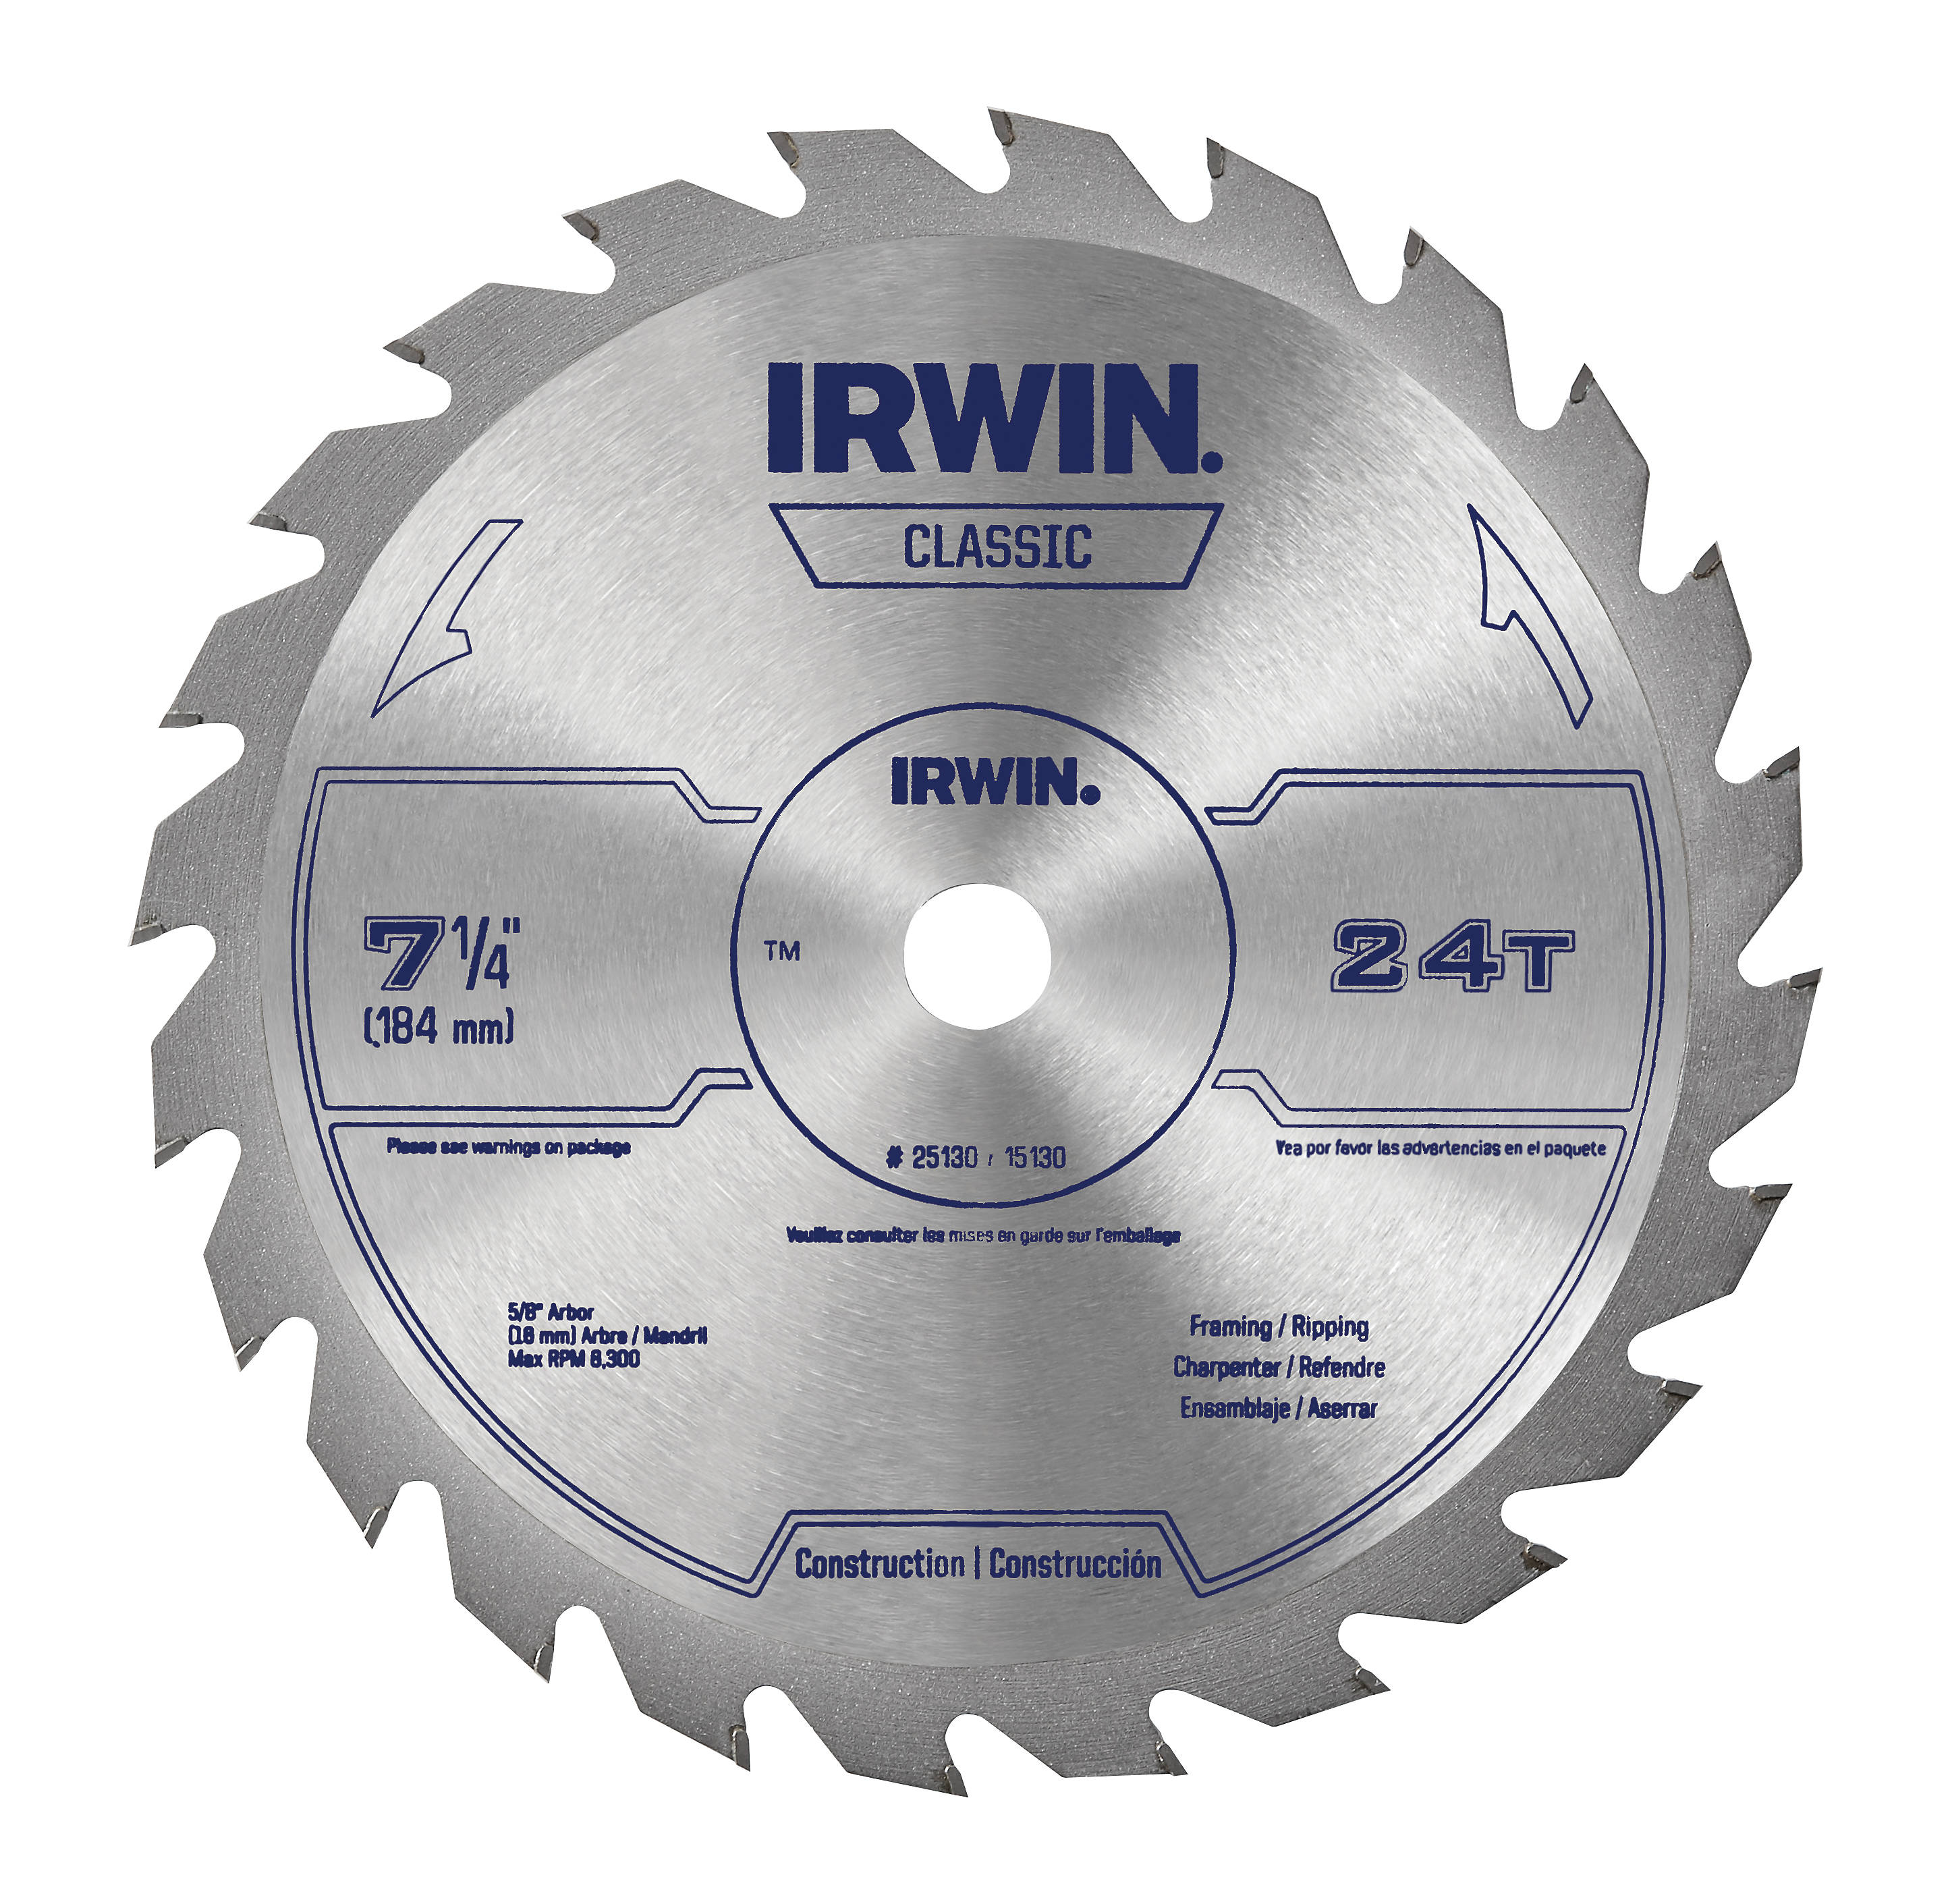 Shop IRWIN Classic-Pack 7-1/4-in-Tooth Circular Saw Blade at Lowes.com